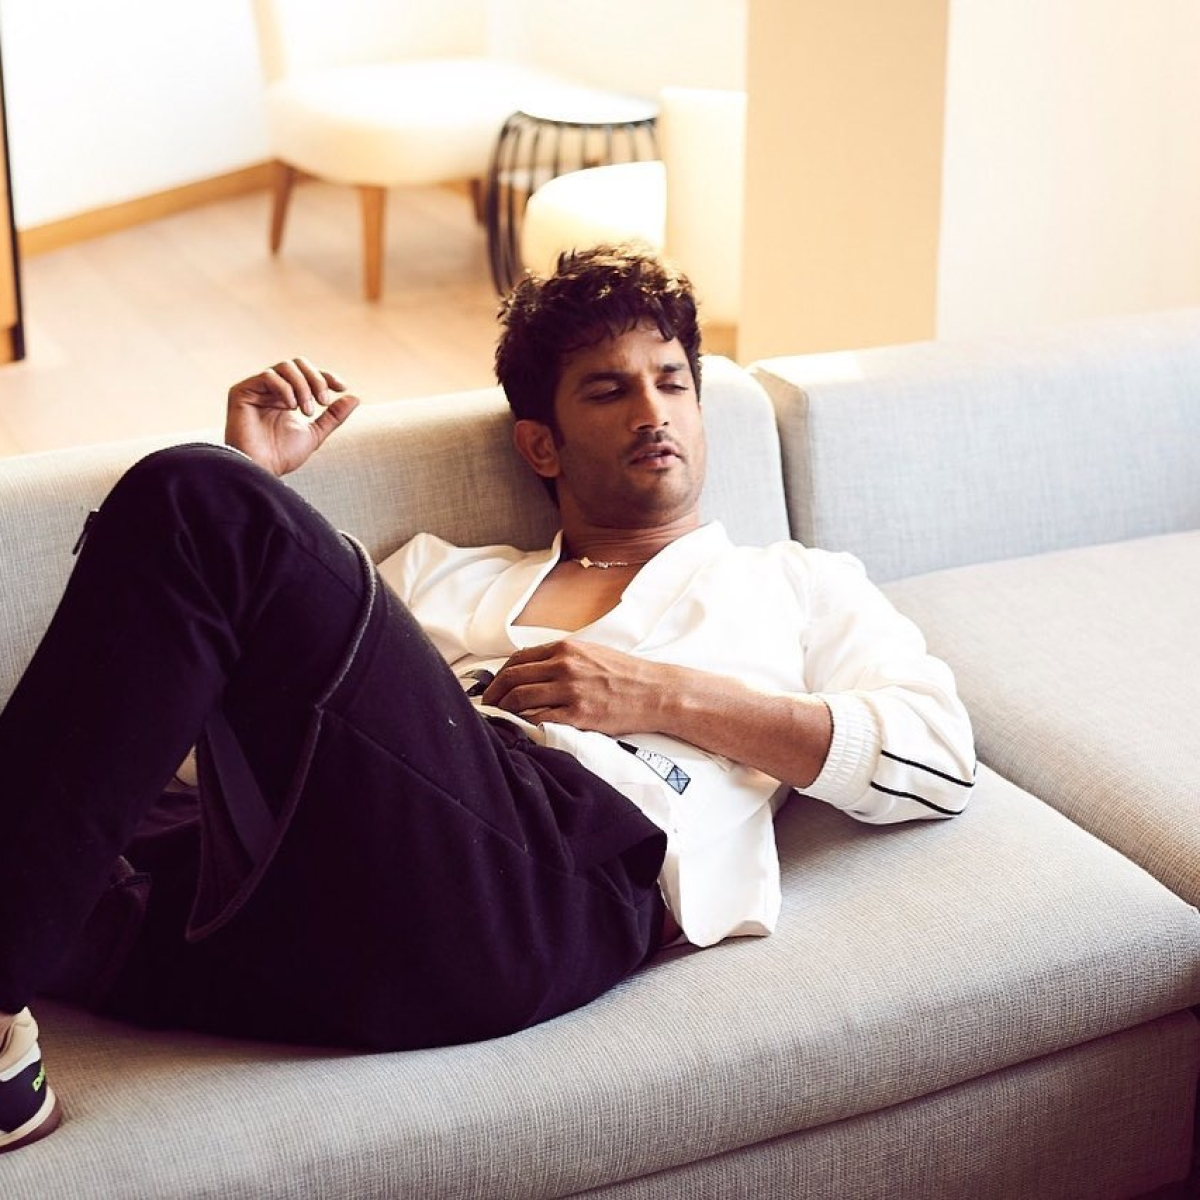 New chats of Sushant's sister Priyanka arranging anti-depressants for the actor shed light on mental health angle